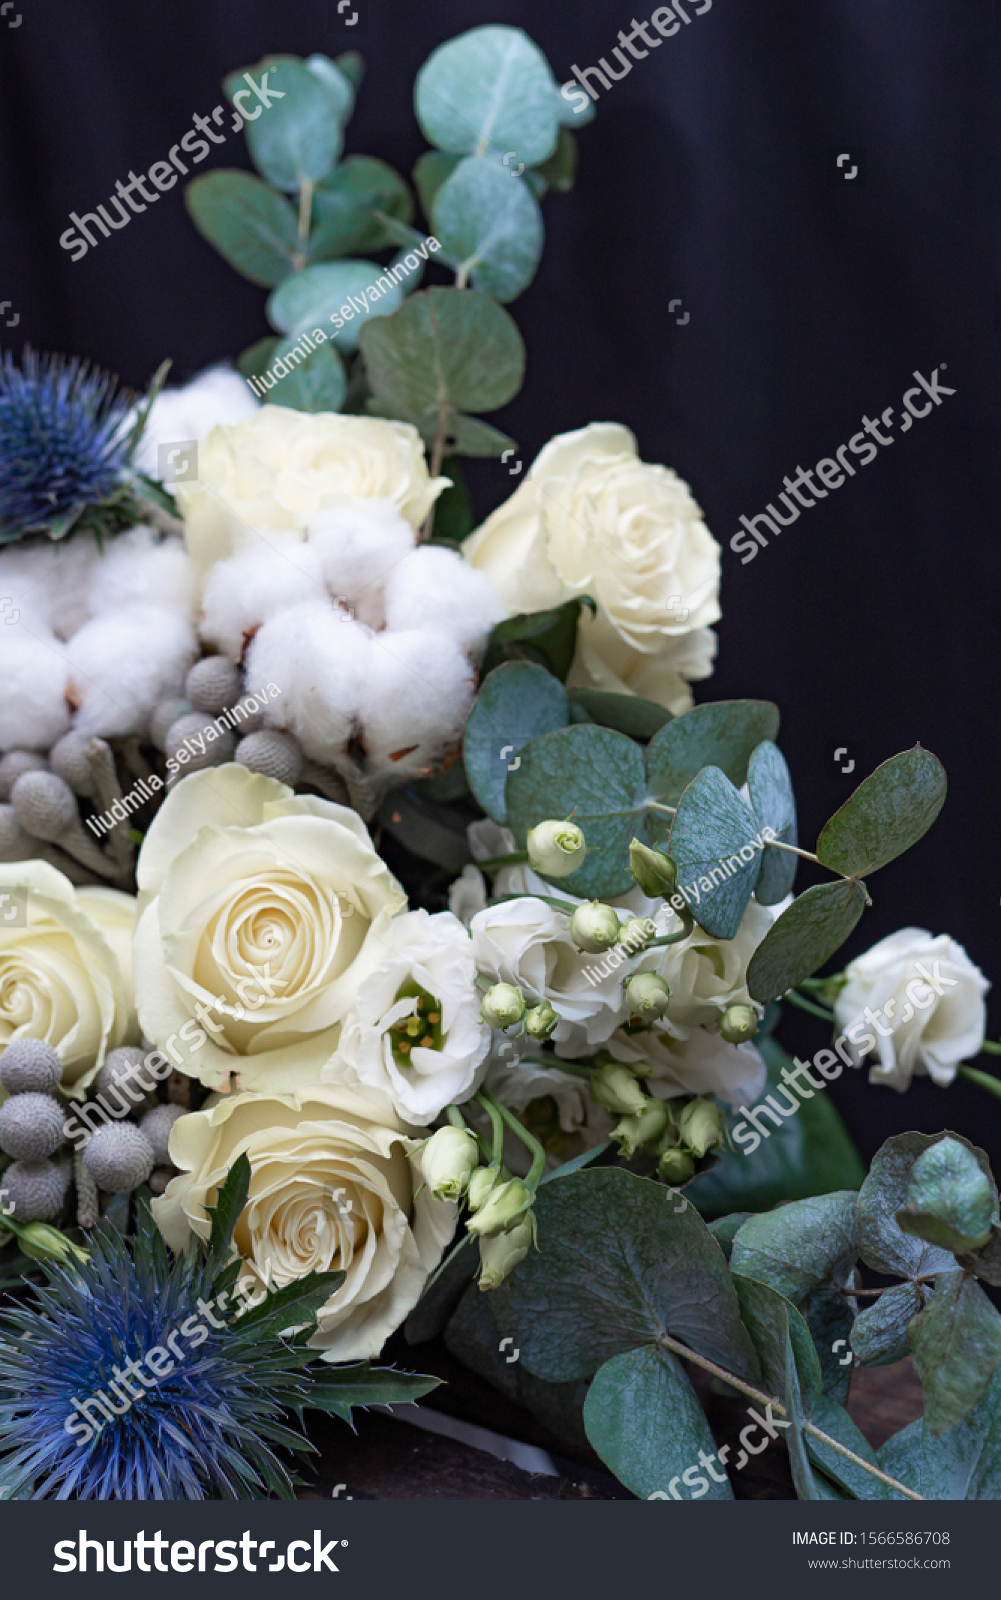 Winter Wedding Bouquet White Roses Cotton Stock Photo Edit Now 1566586708